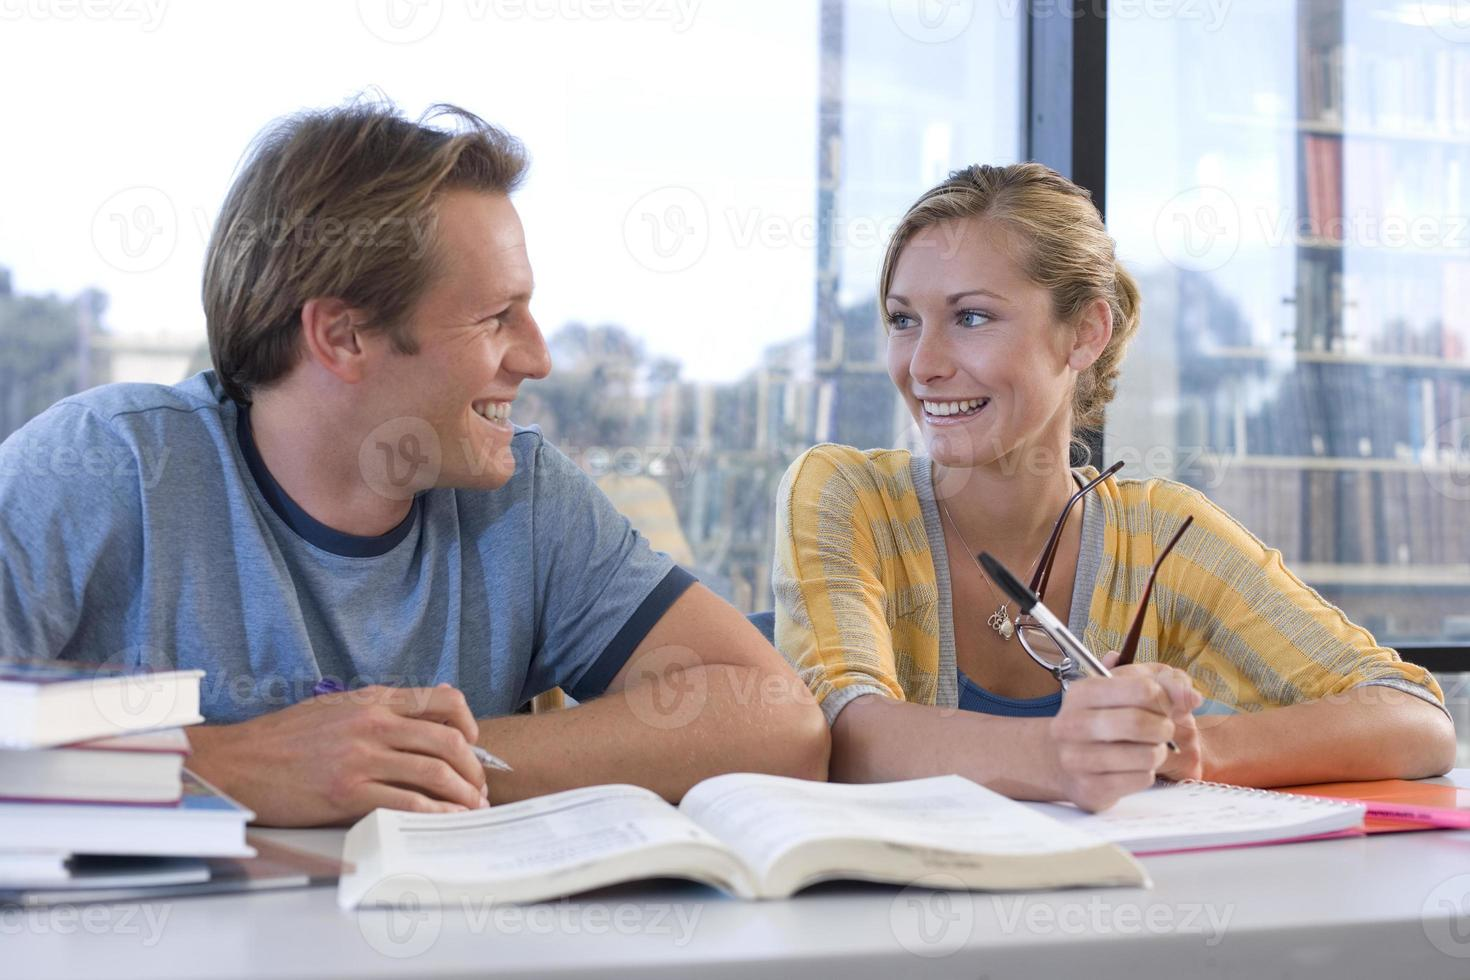 man and woman at desk studying at each other, close-up photo